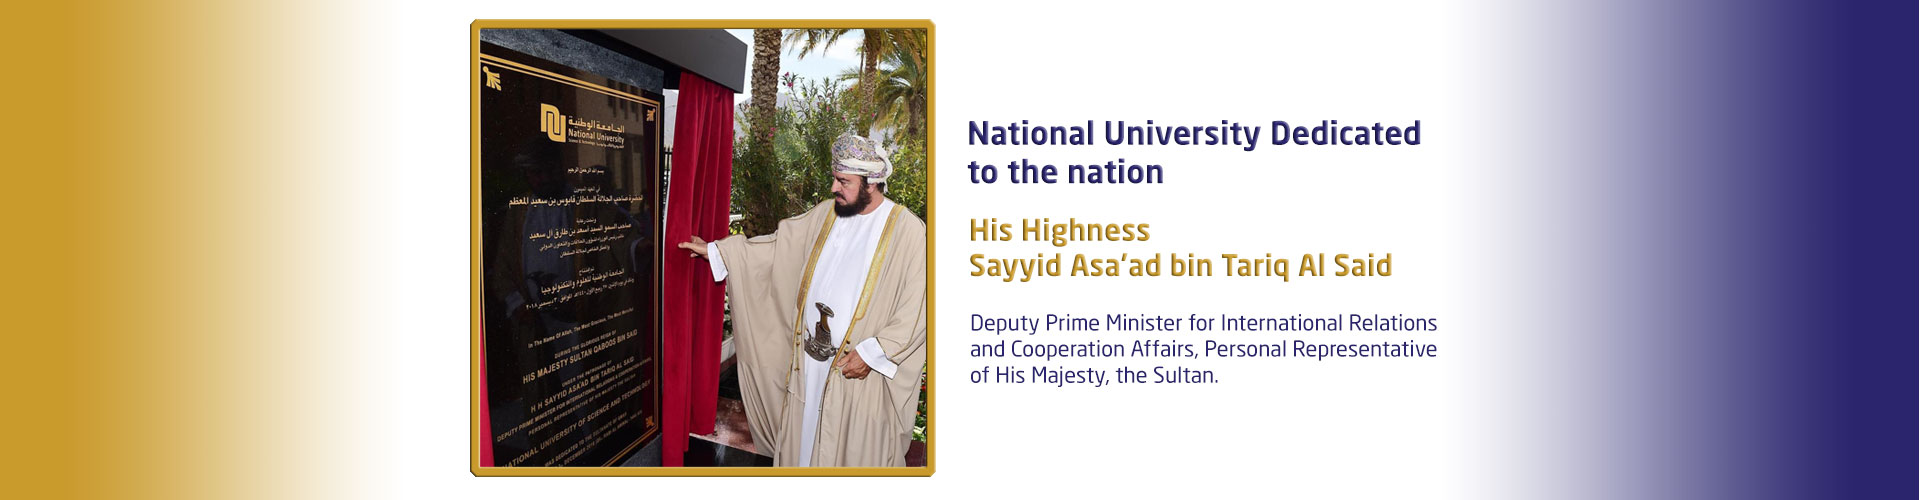 Dedication of NU to Nation